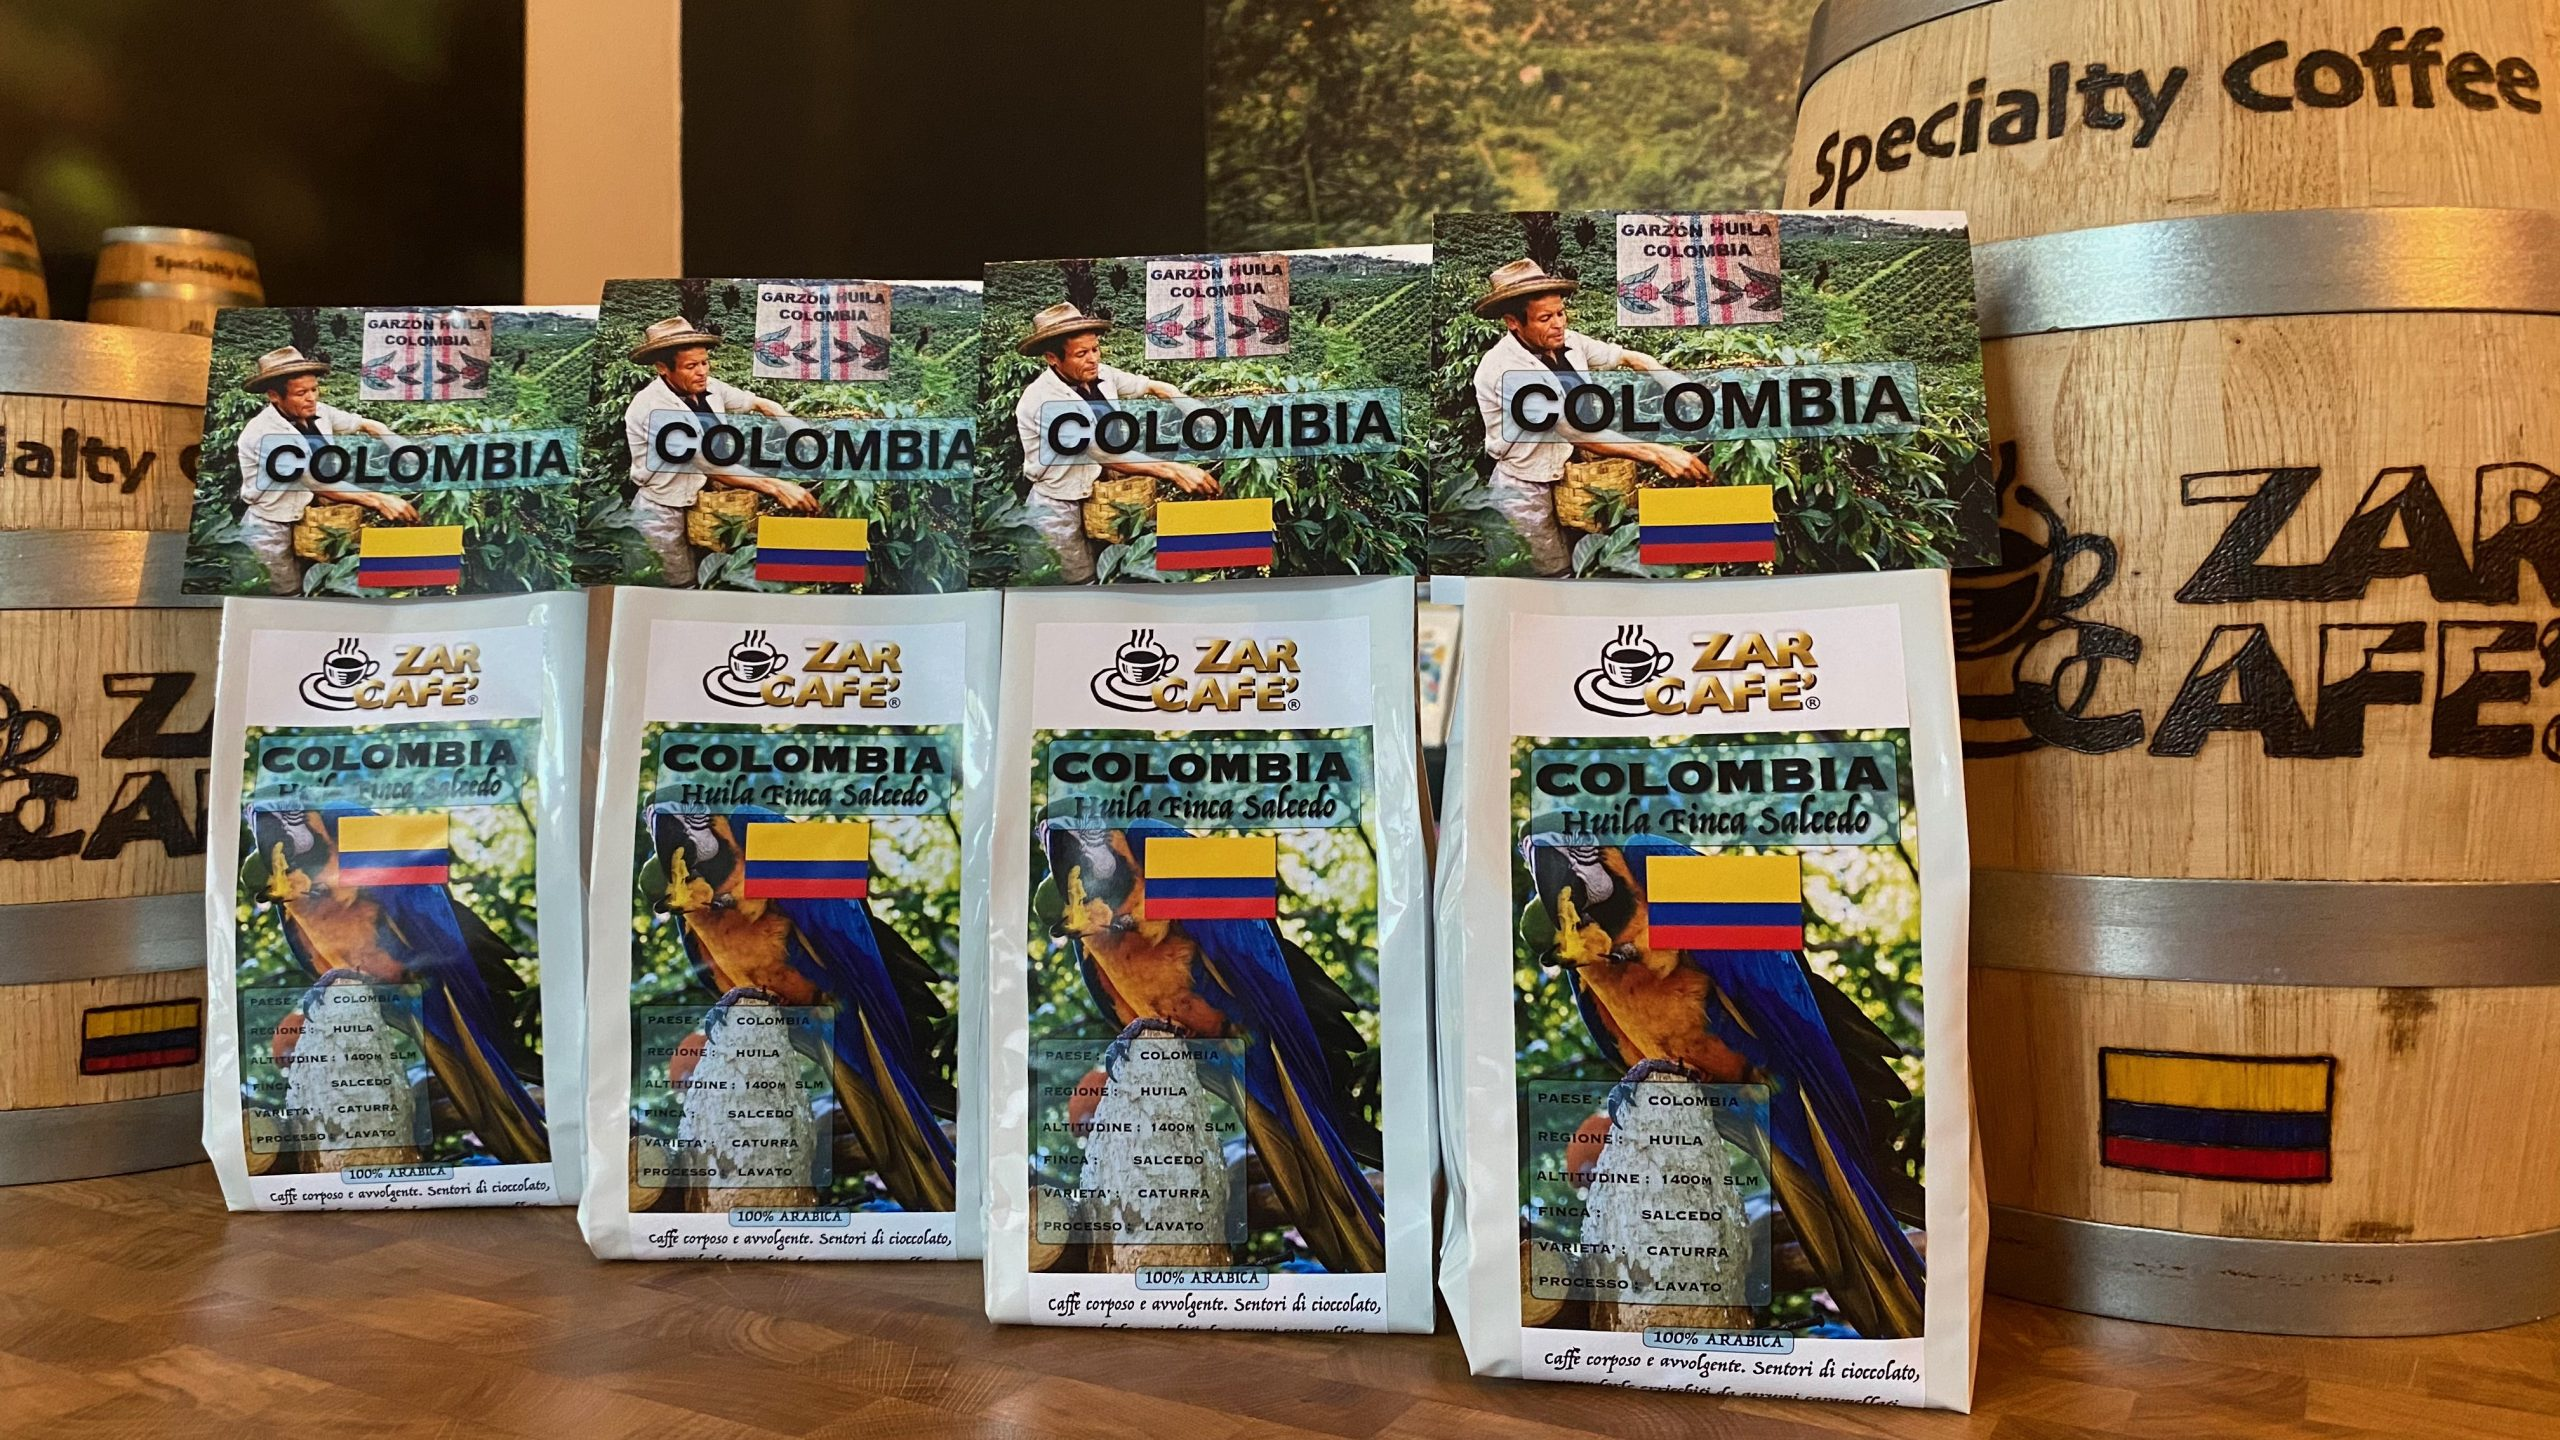 Specialty Coffee Colombia